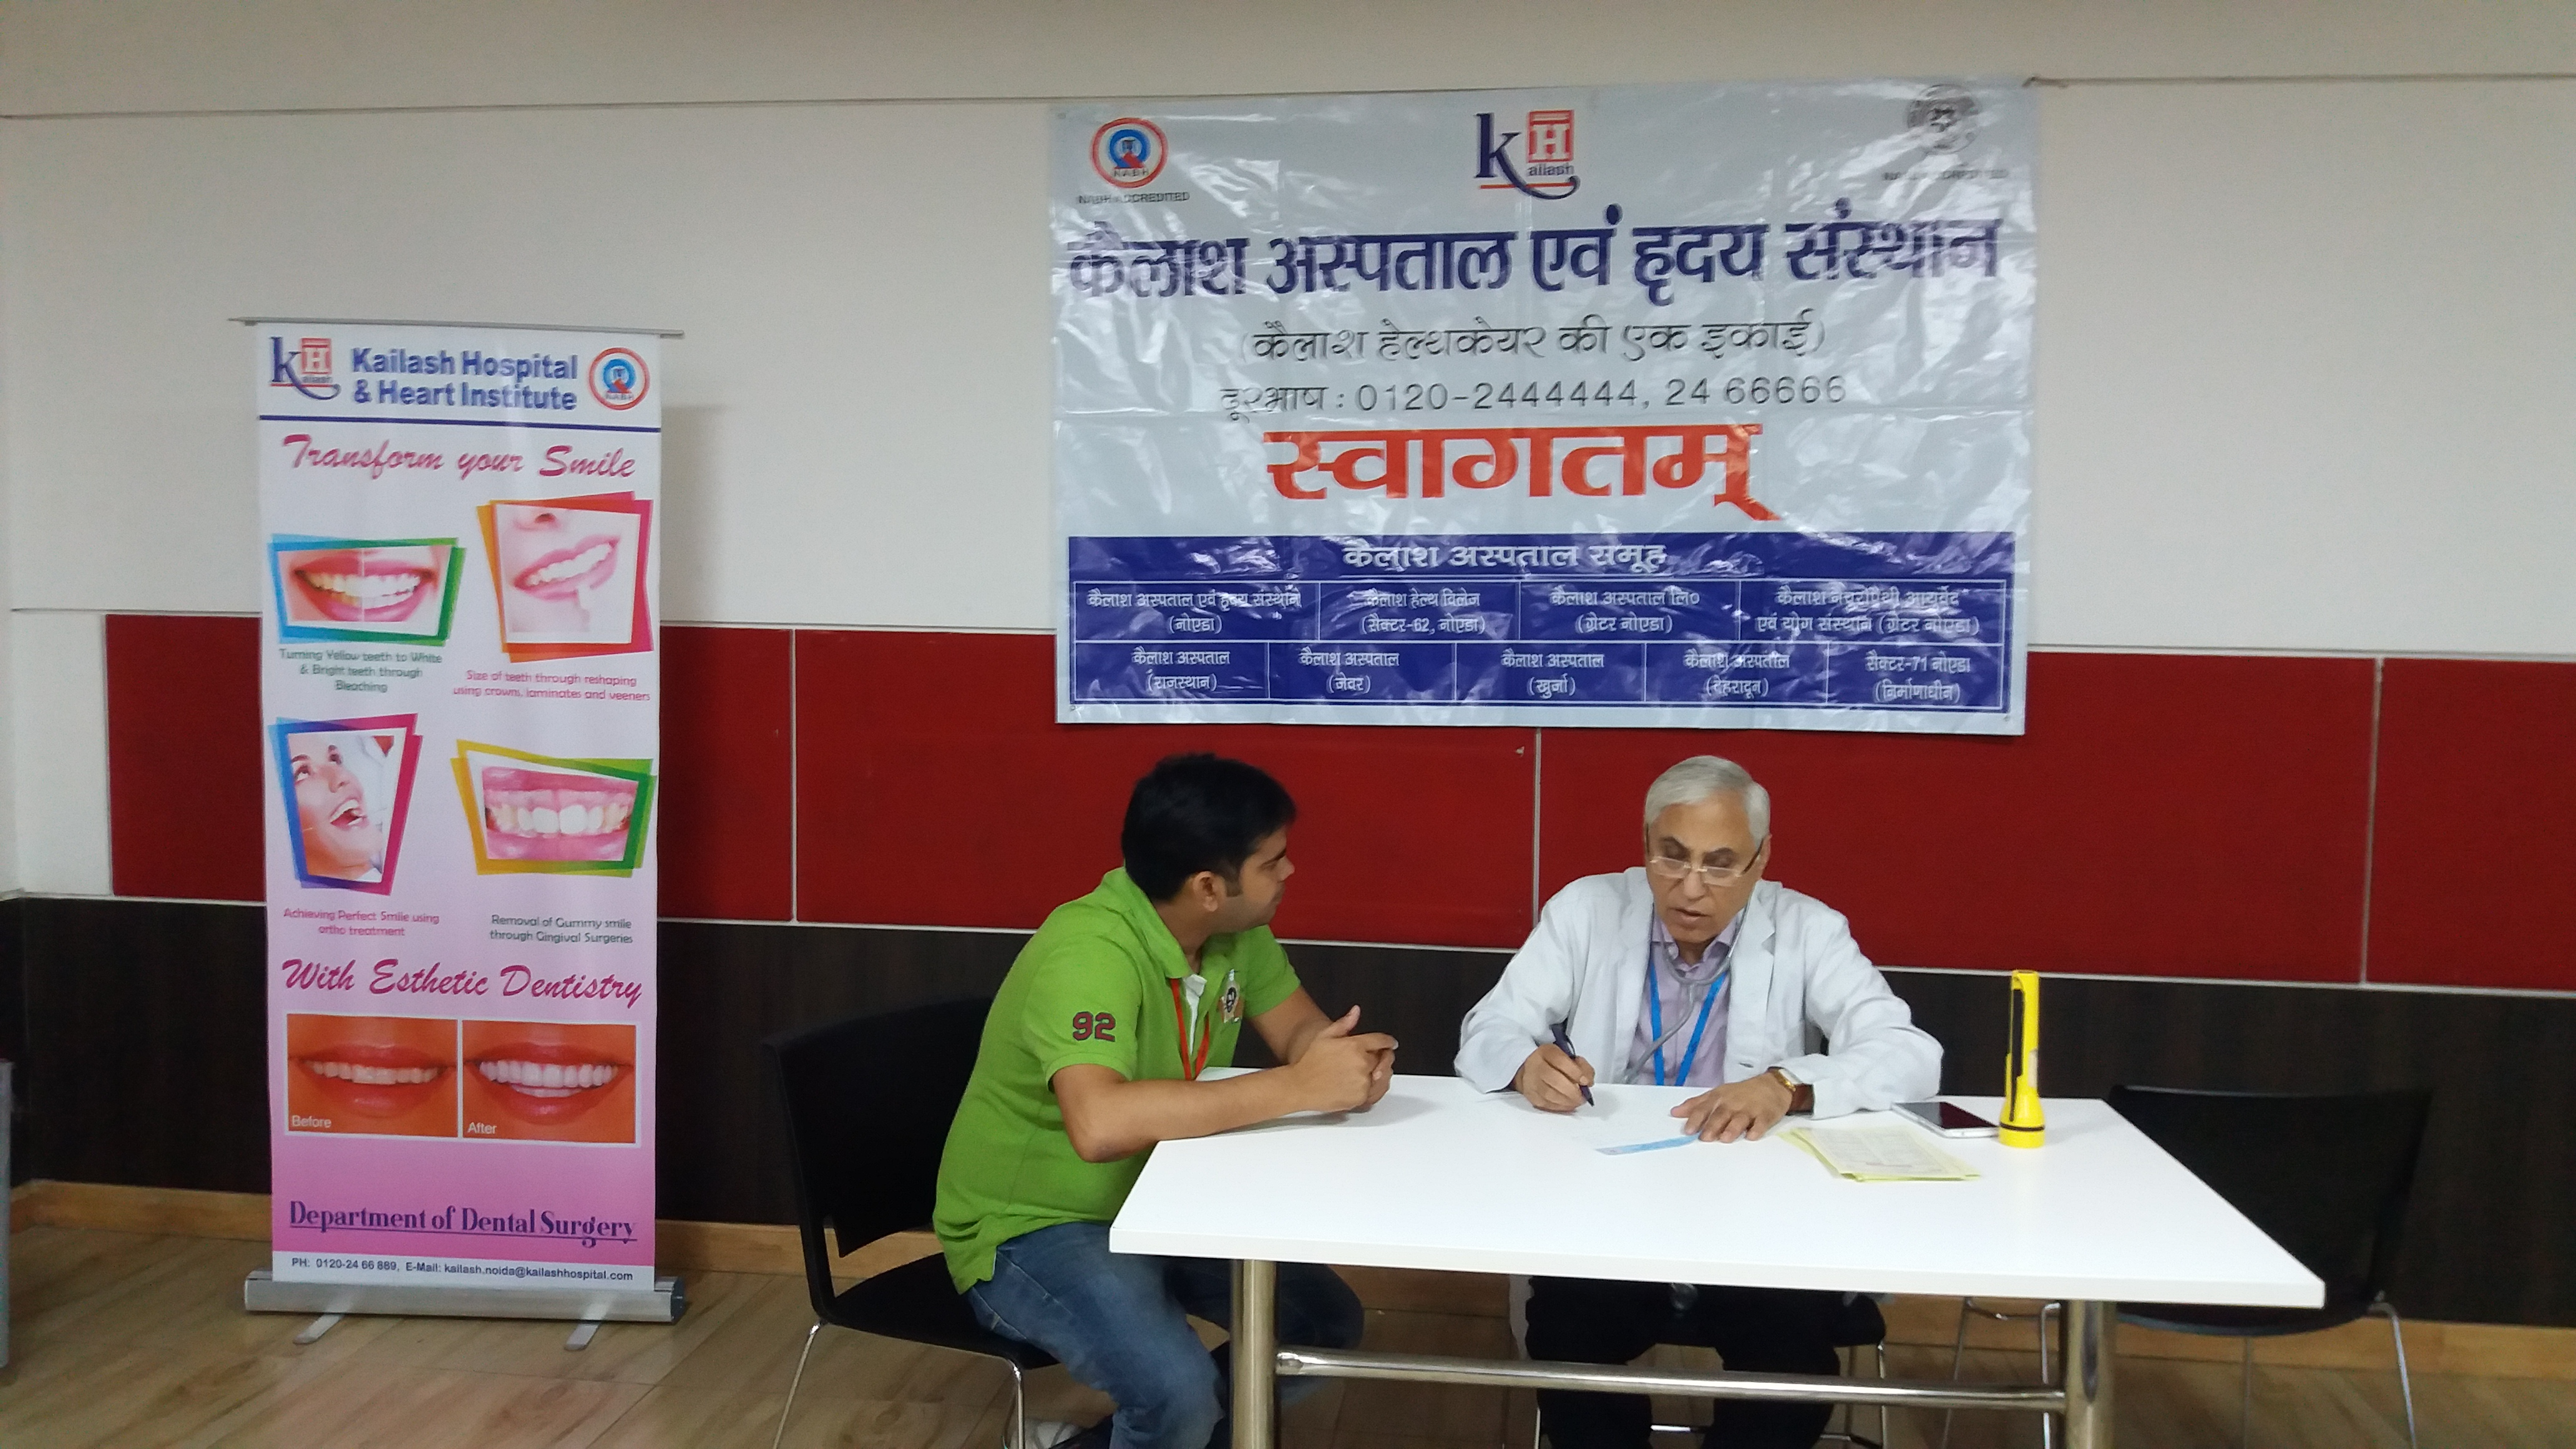 Kailash Hospital & Heart Institute Noida Organized a Free